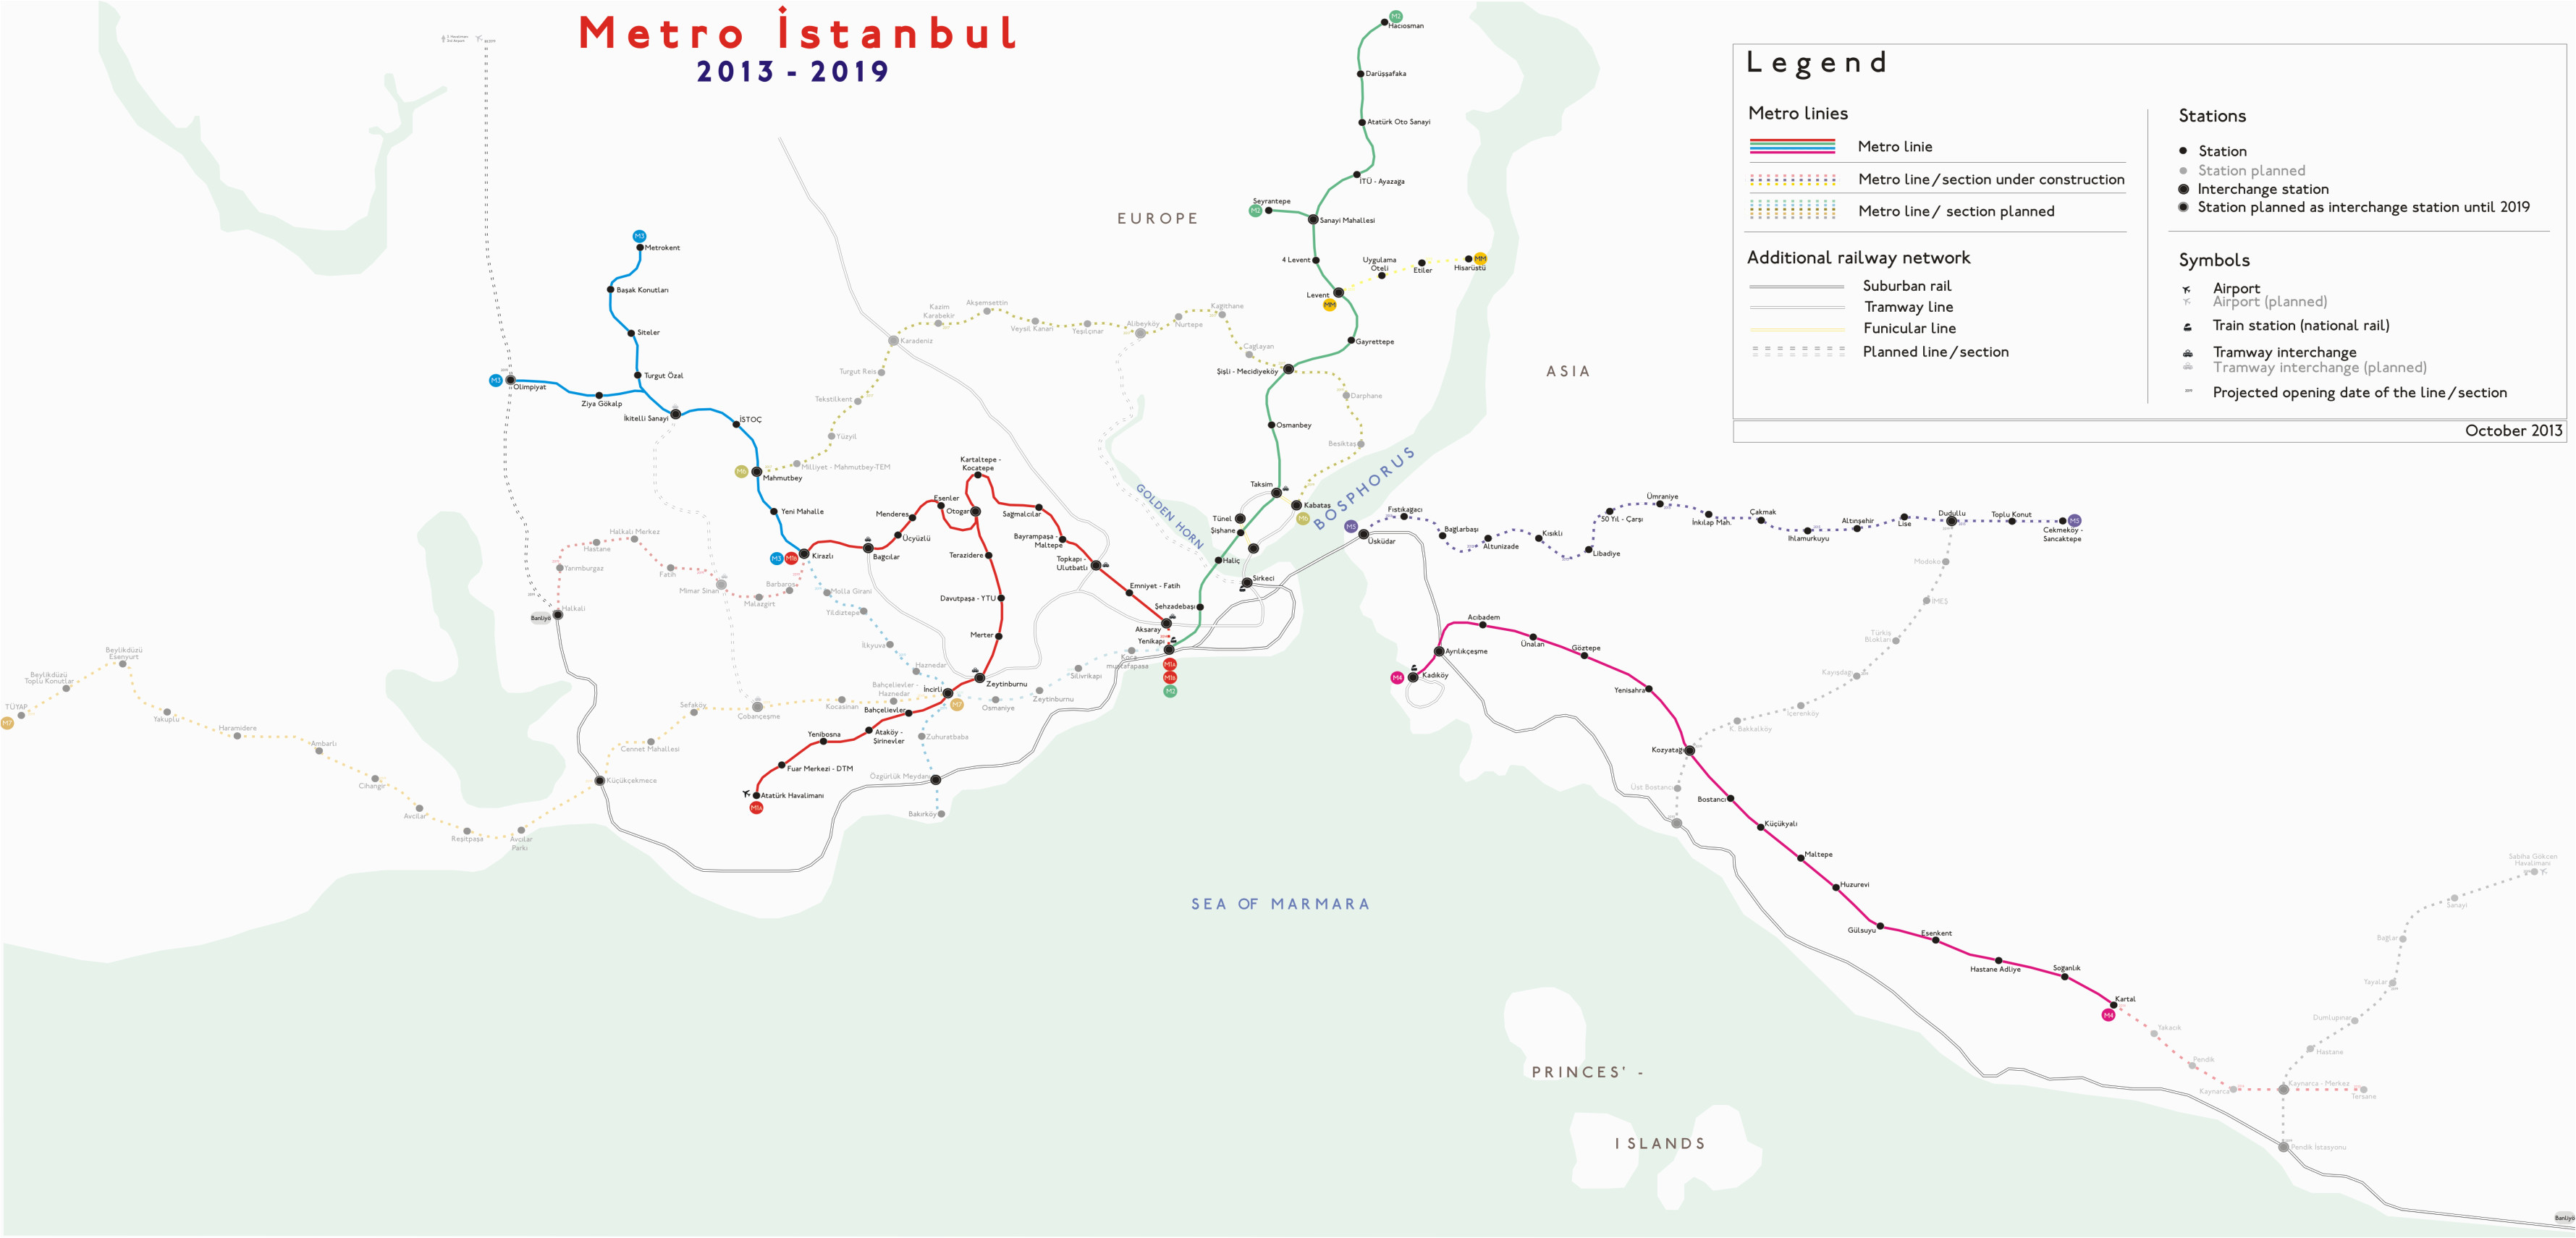 file metro istanbul map july 2013 png wikimedia commons